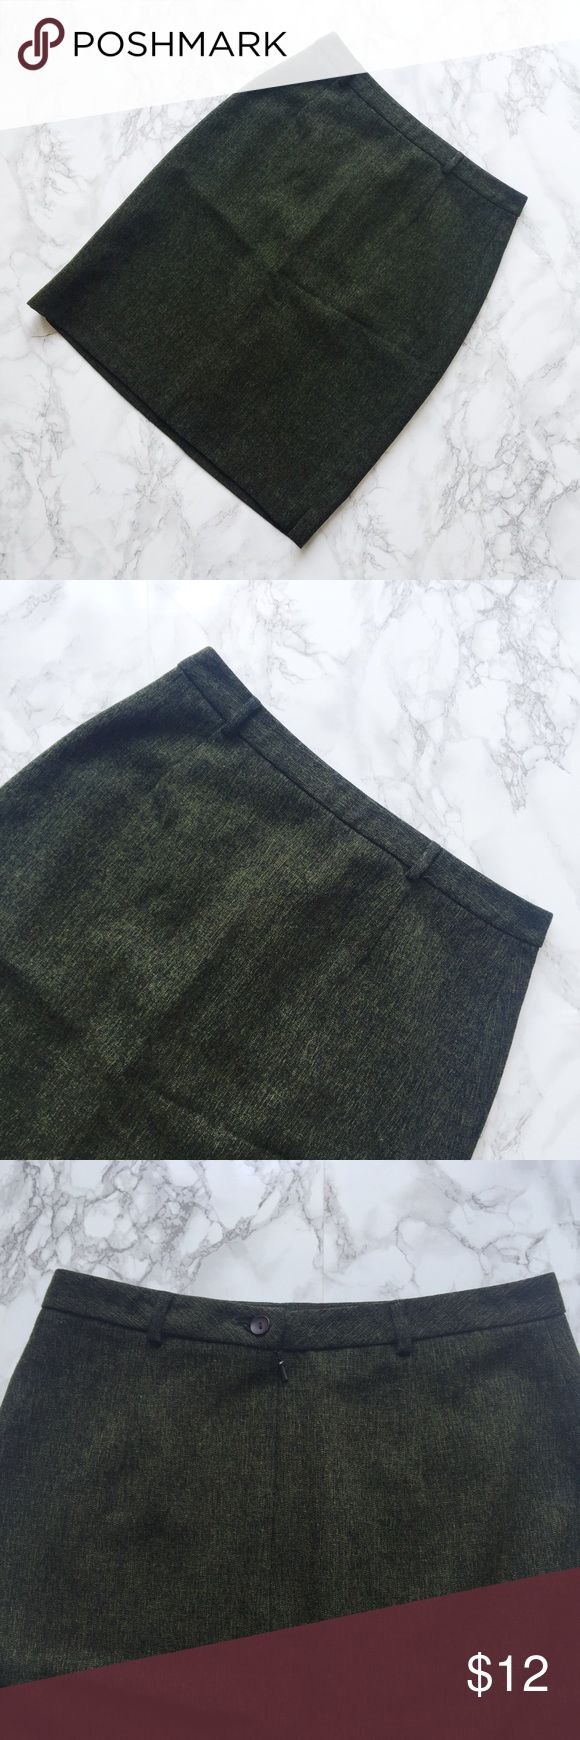 Dark Green Pencil Skirt Green Oasis pencil skirt. ★ measurements available upon request ★ reasonable offers considered ★ no trades oasis Skirts Pencil